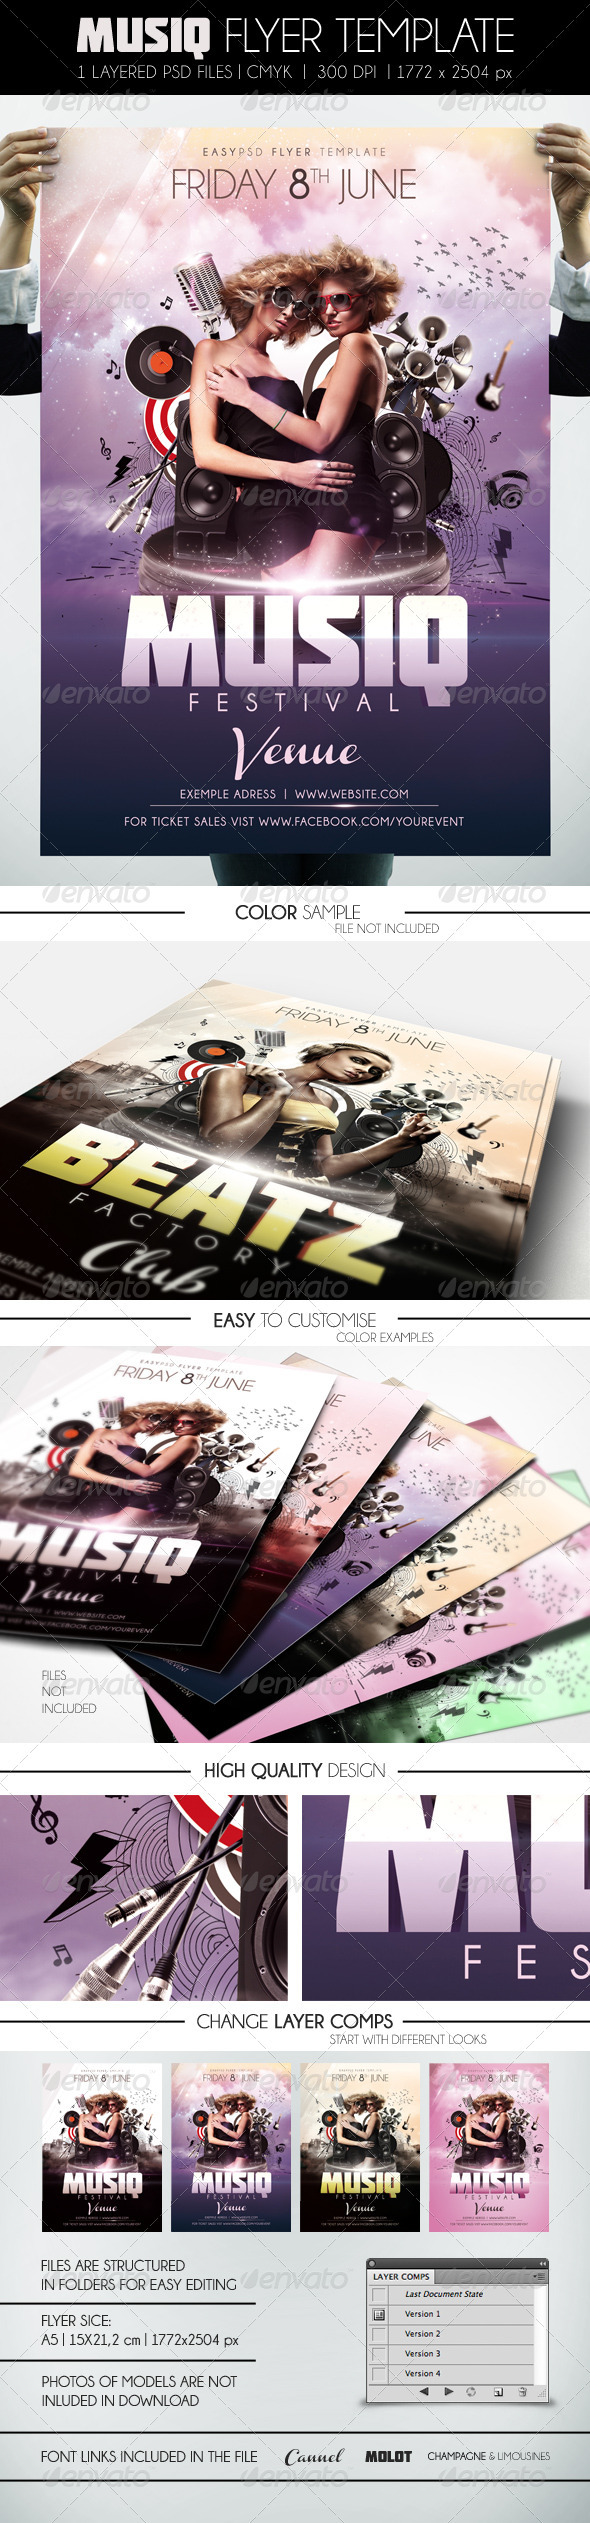 Musiq Flyer Template - Clubs & Parties Events